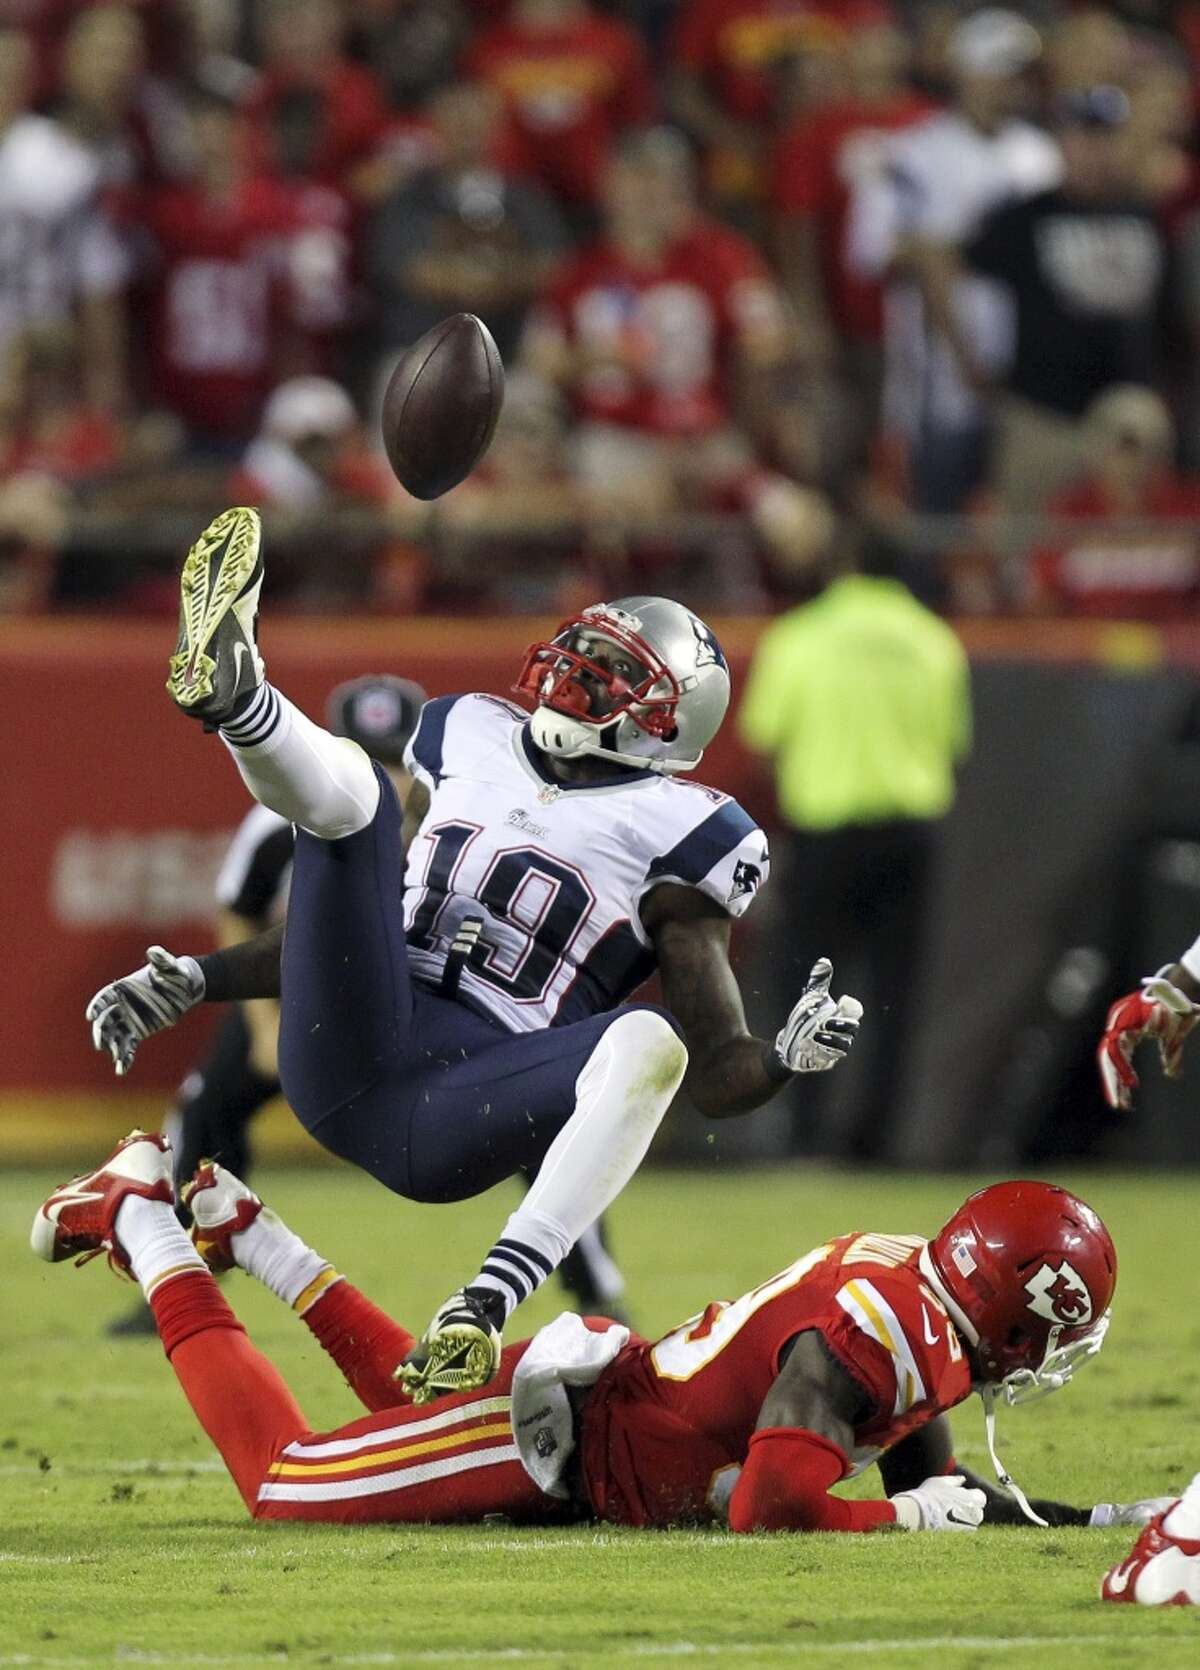 New England Patriots wide receiver Brandon LaFell (19) cannot come up with a pass as Kansas City Chiefs free safety Husain Abdullah, bottom, defends during the fourth quarter of an NFL football game Monday, Sept. 29, 2014, in Kansas City, Mo. (AP Photo/Ed Zurga)